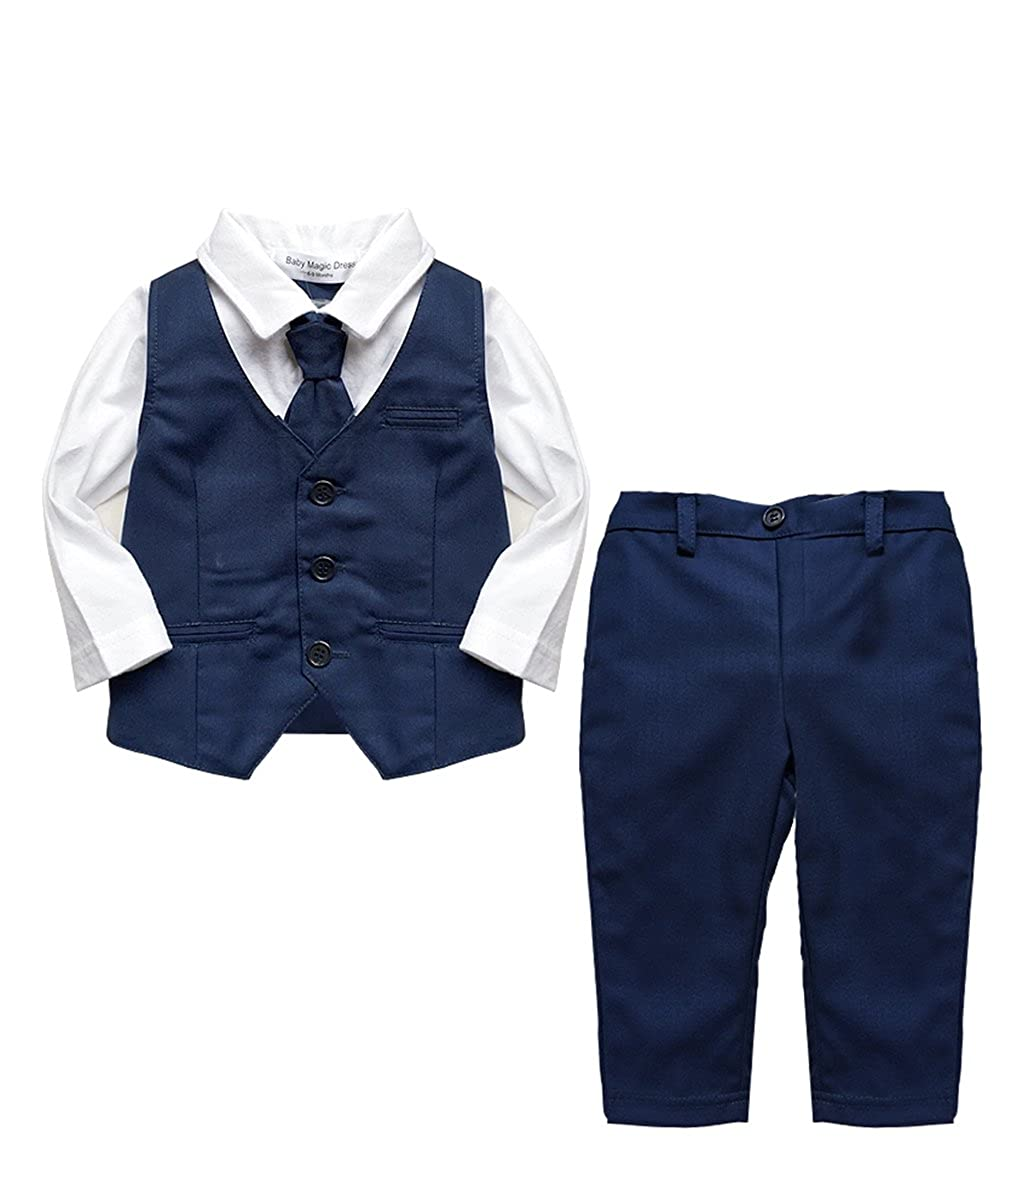 Page Boy Wedding Christening 2pc Suit with Cravat